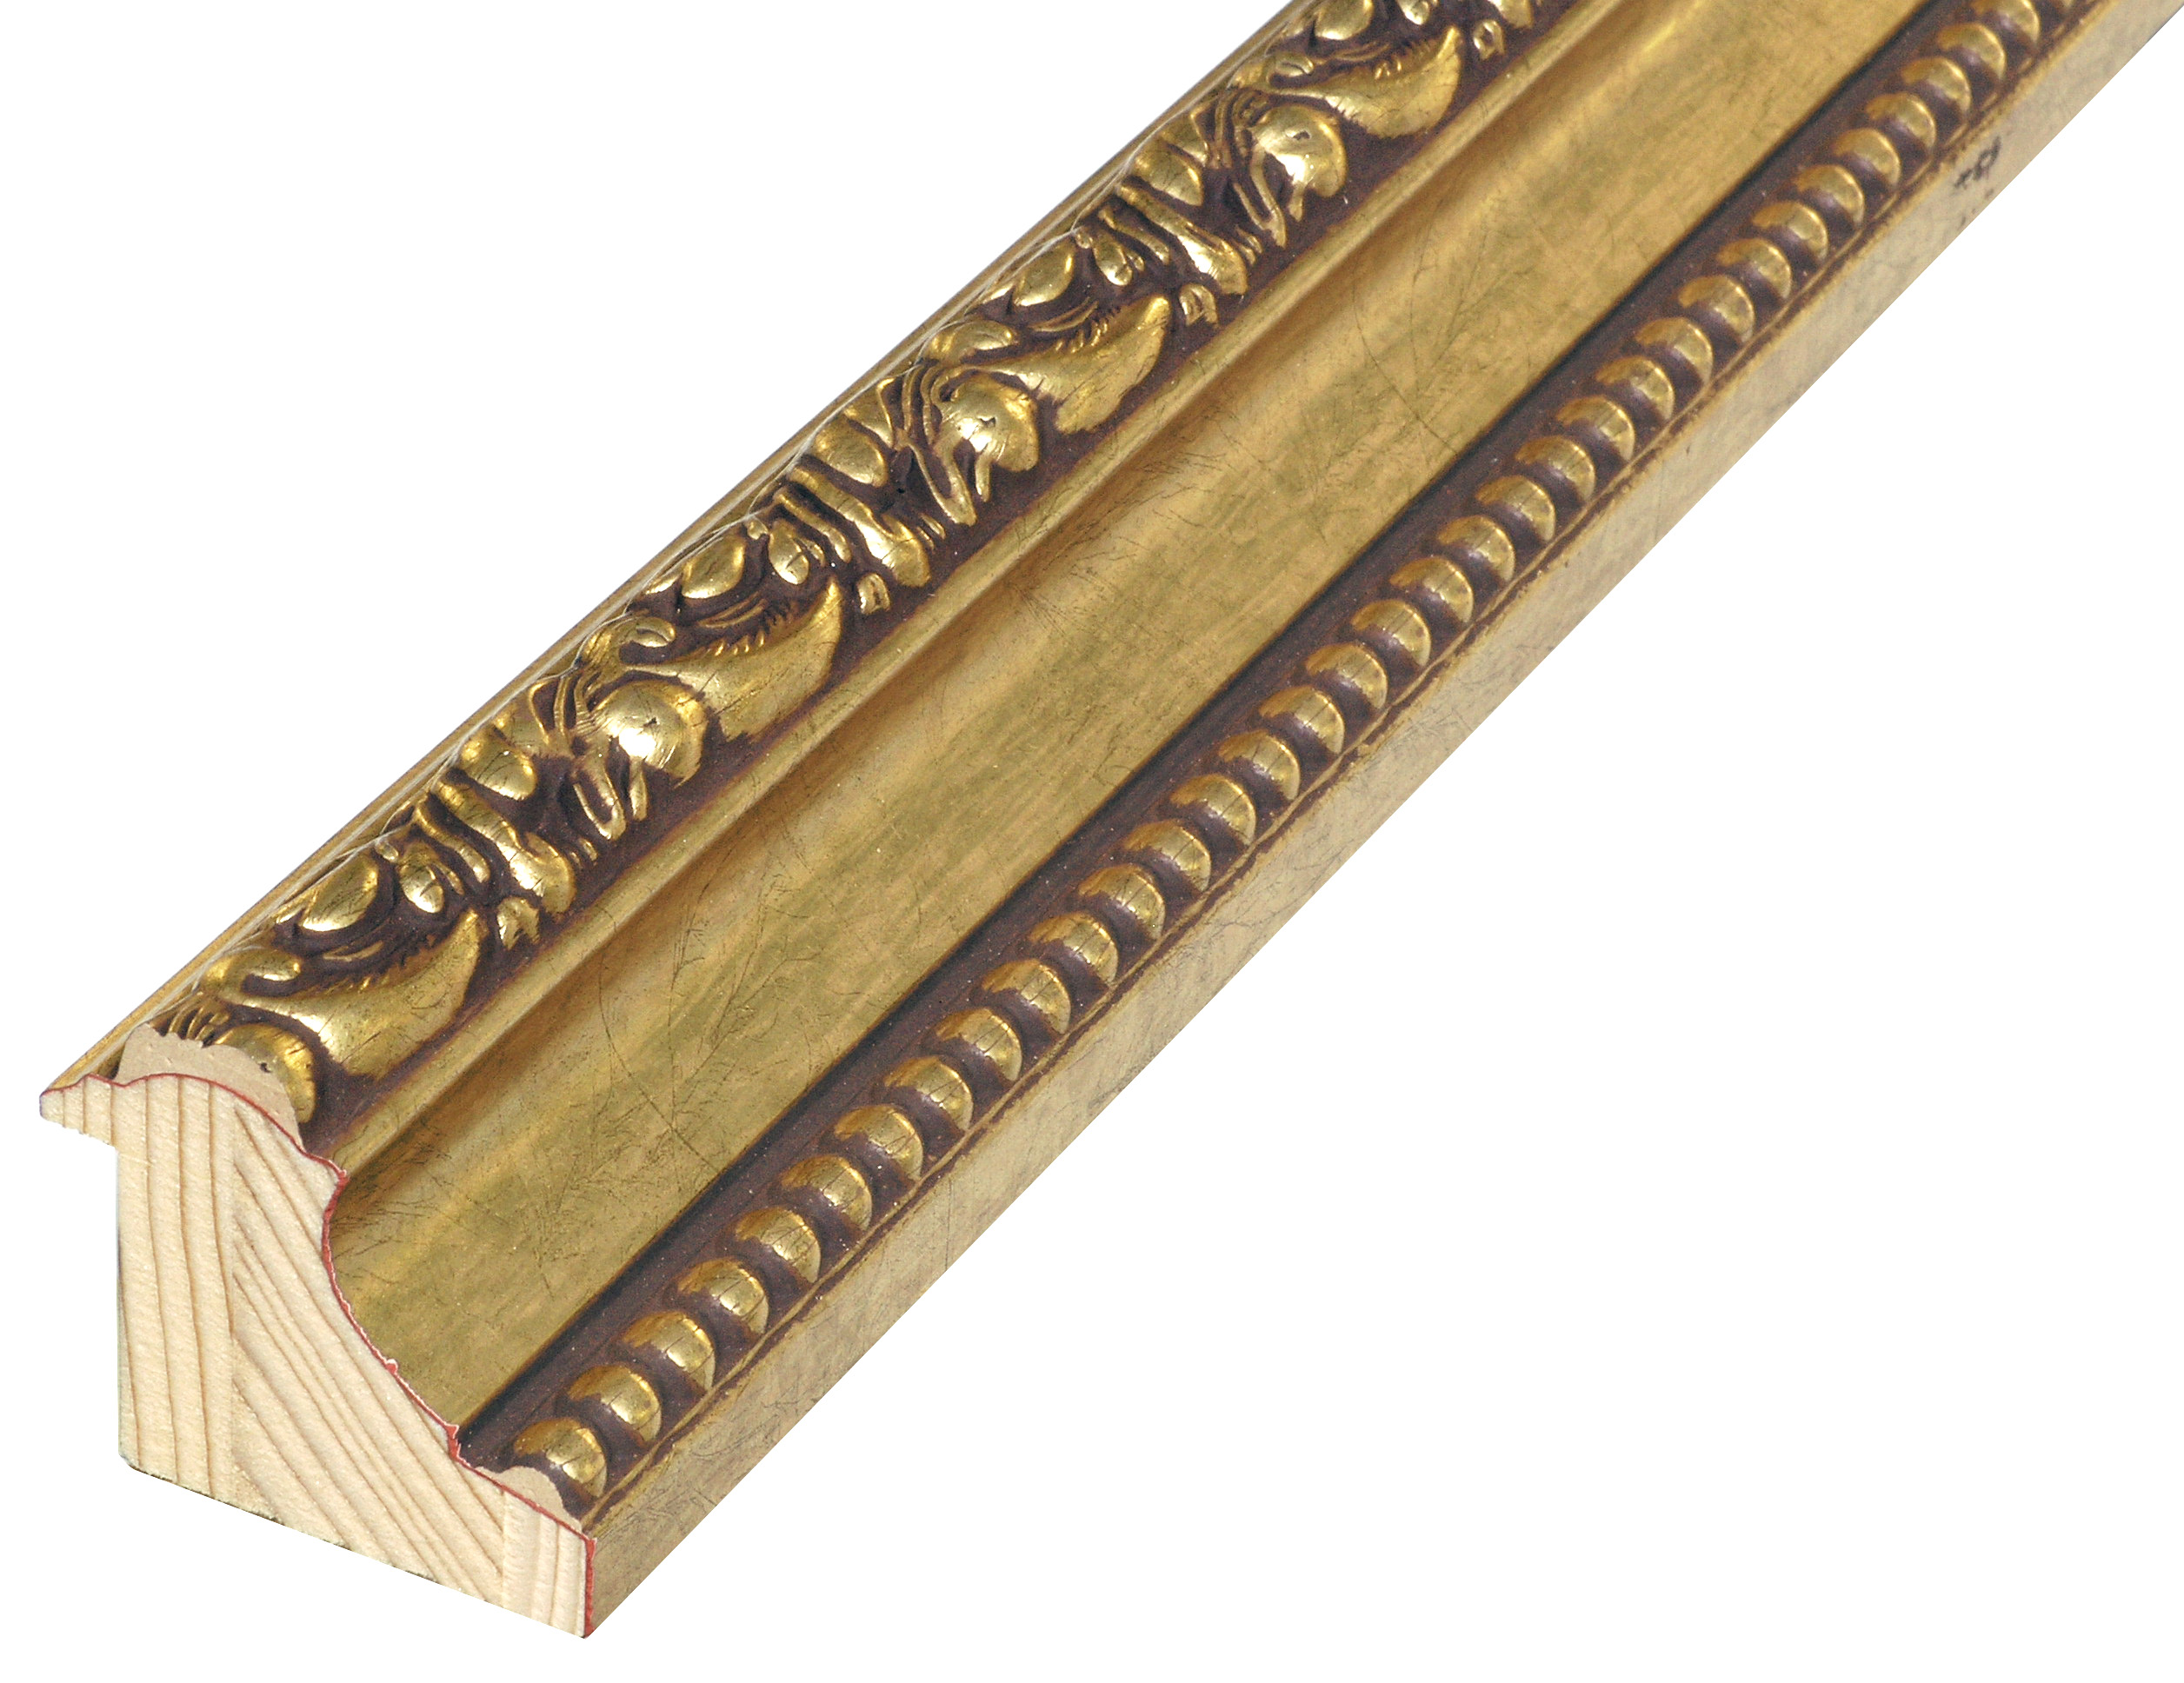 Moulding jointed fir, width 50mm, height 44 - Gold, decorations